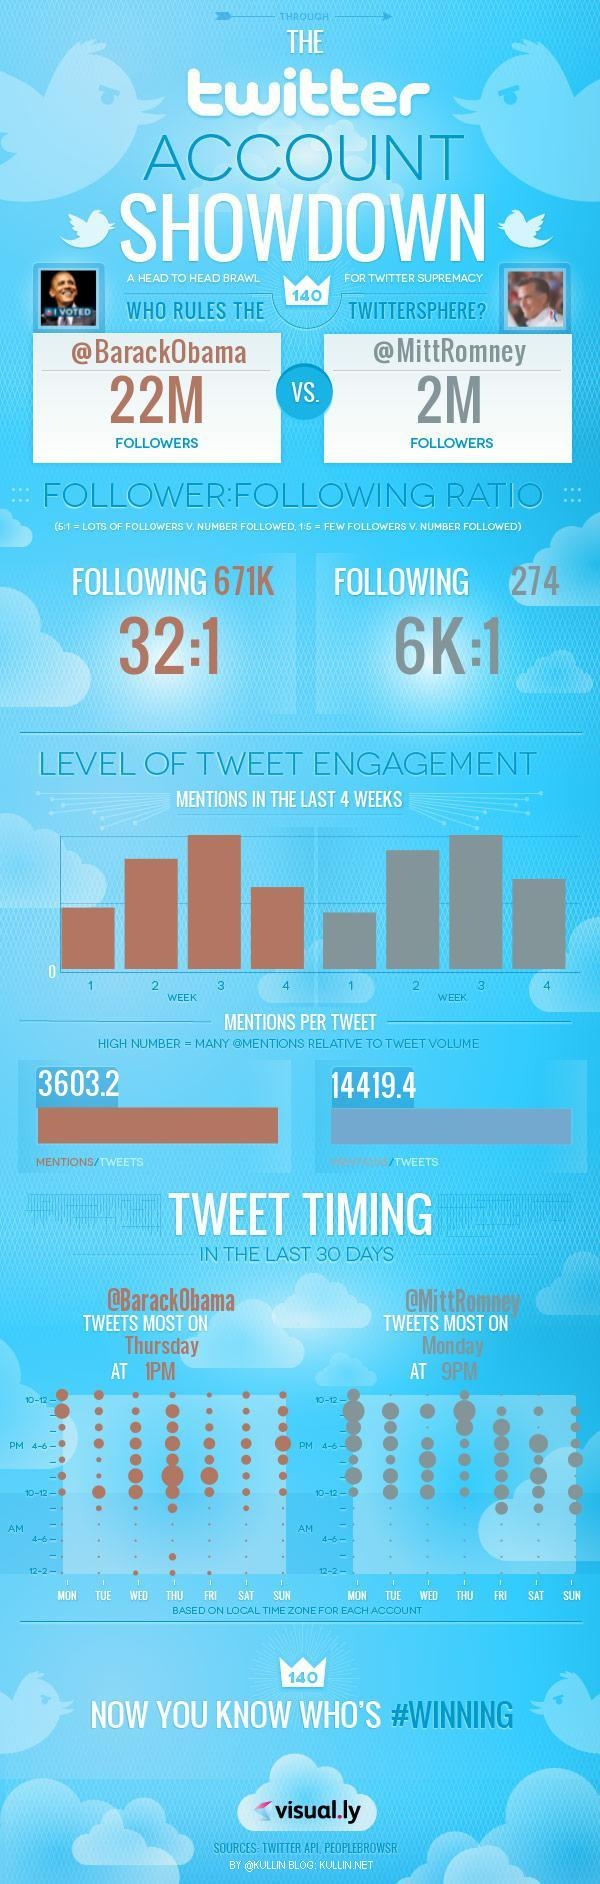 infographic Obama vs Romney Twitter